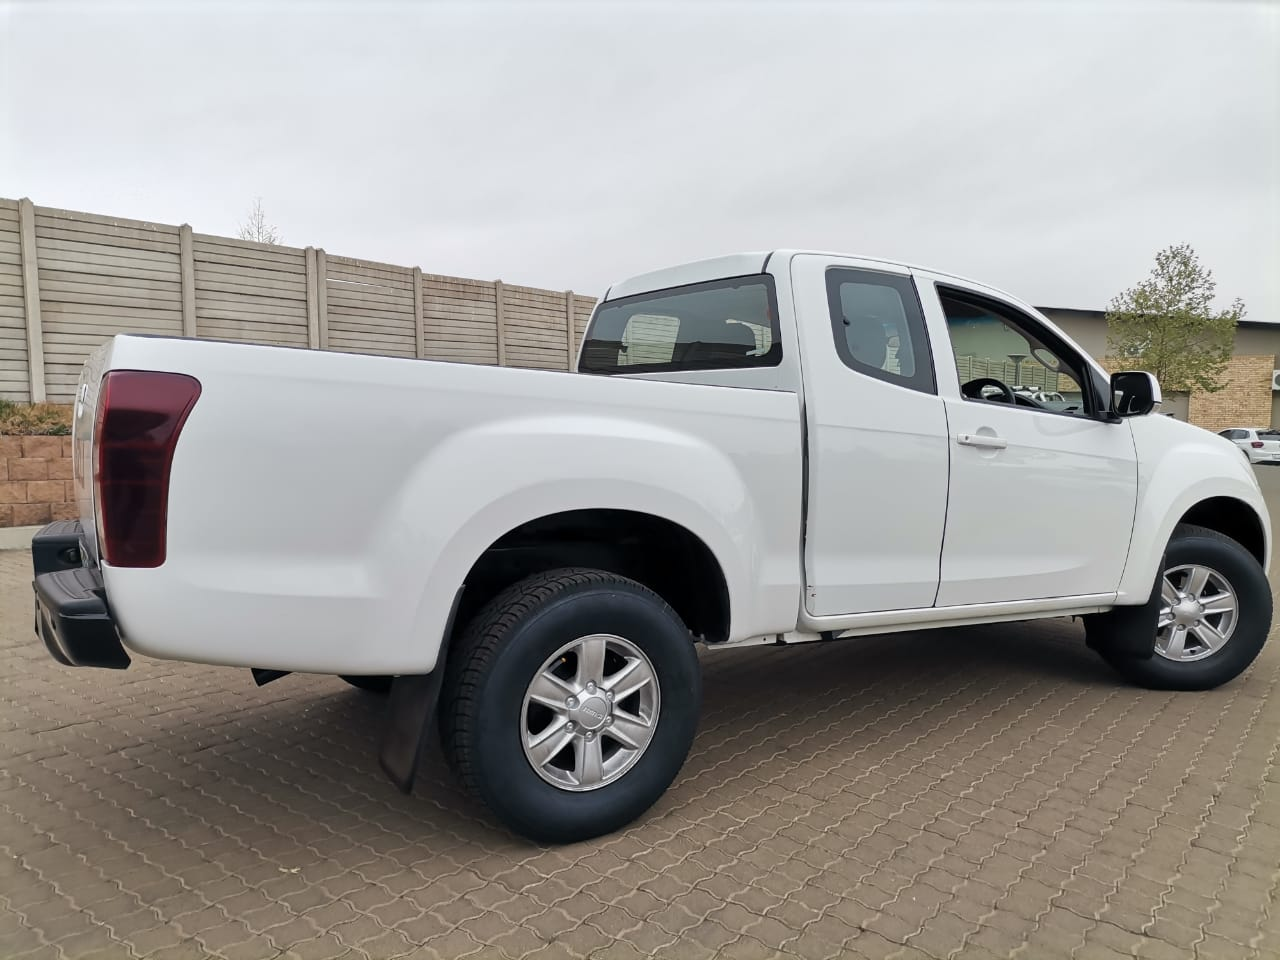 2014 Isuzu KB250 D-Teq LE Extended Cab In Excellent Condition